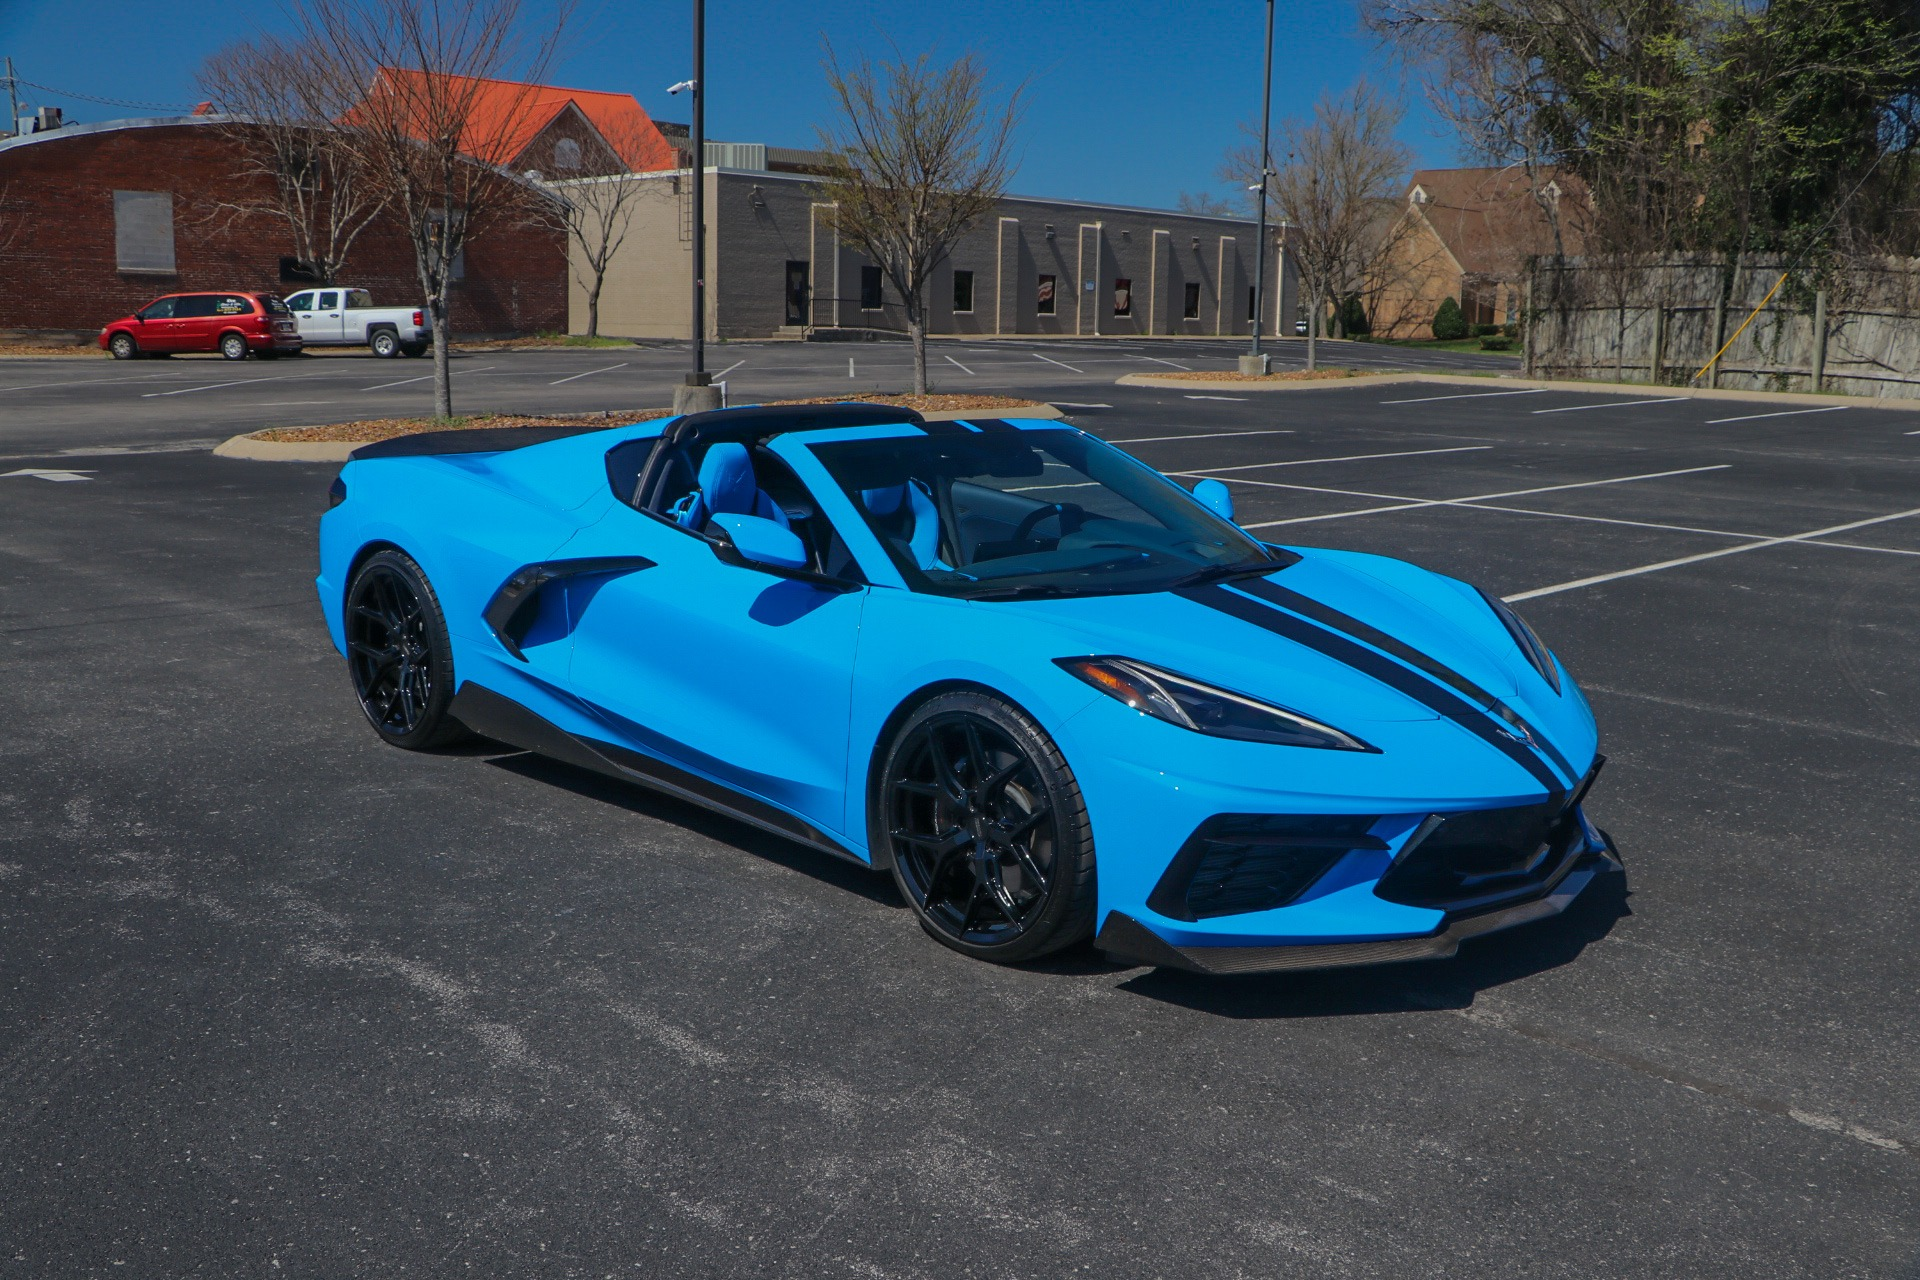 Used 2020 Chevrolet Corvette STINGRAY PERFORMANCE 3LT Z51 W/NAV for sale Sold at Auto Collection in Murfreesboro TN 37130 1